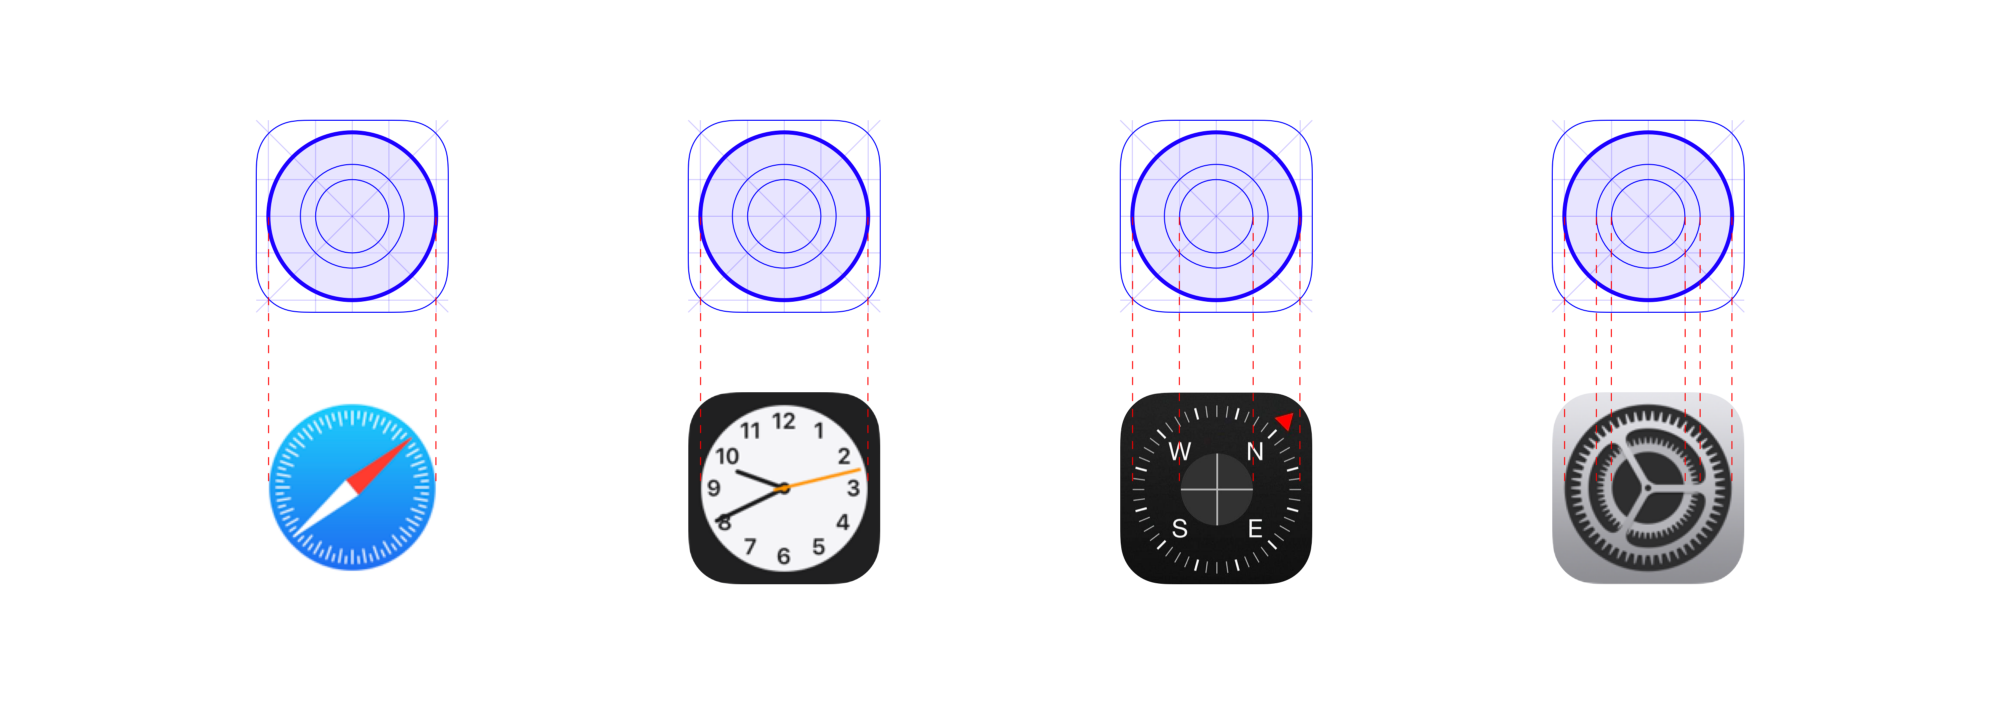 Apple compass faces, clock faces, and gears follow their circular keylines